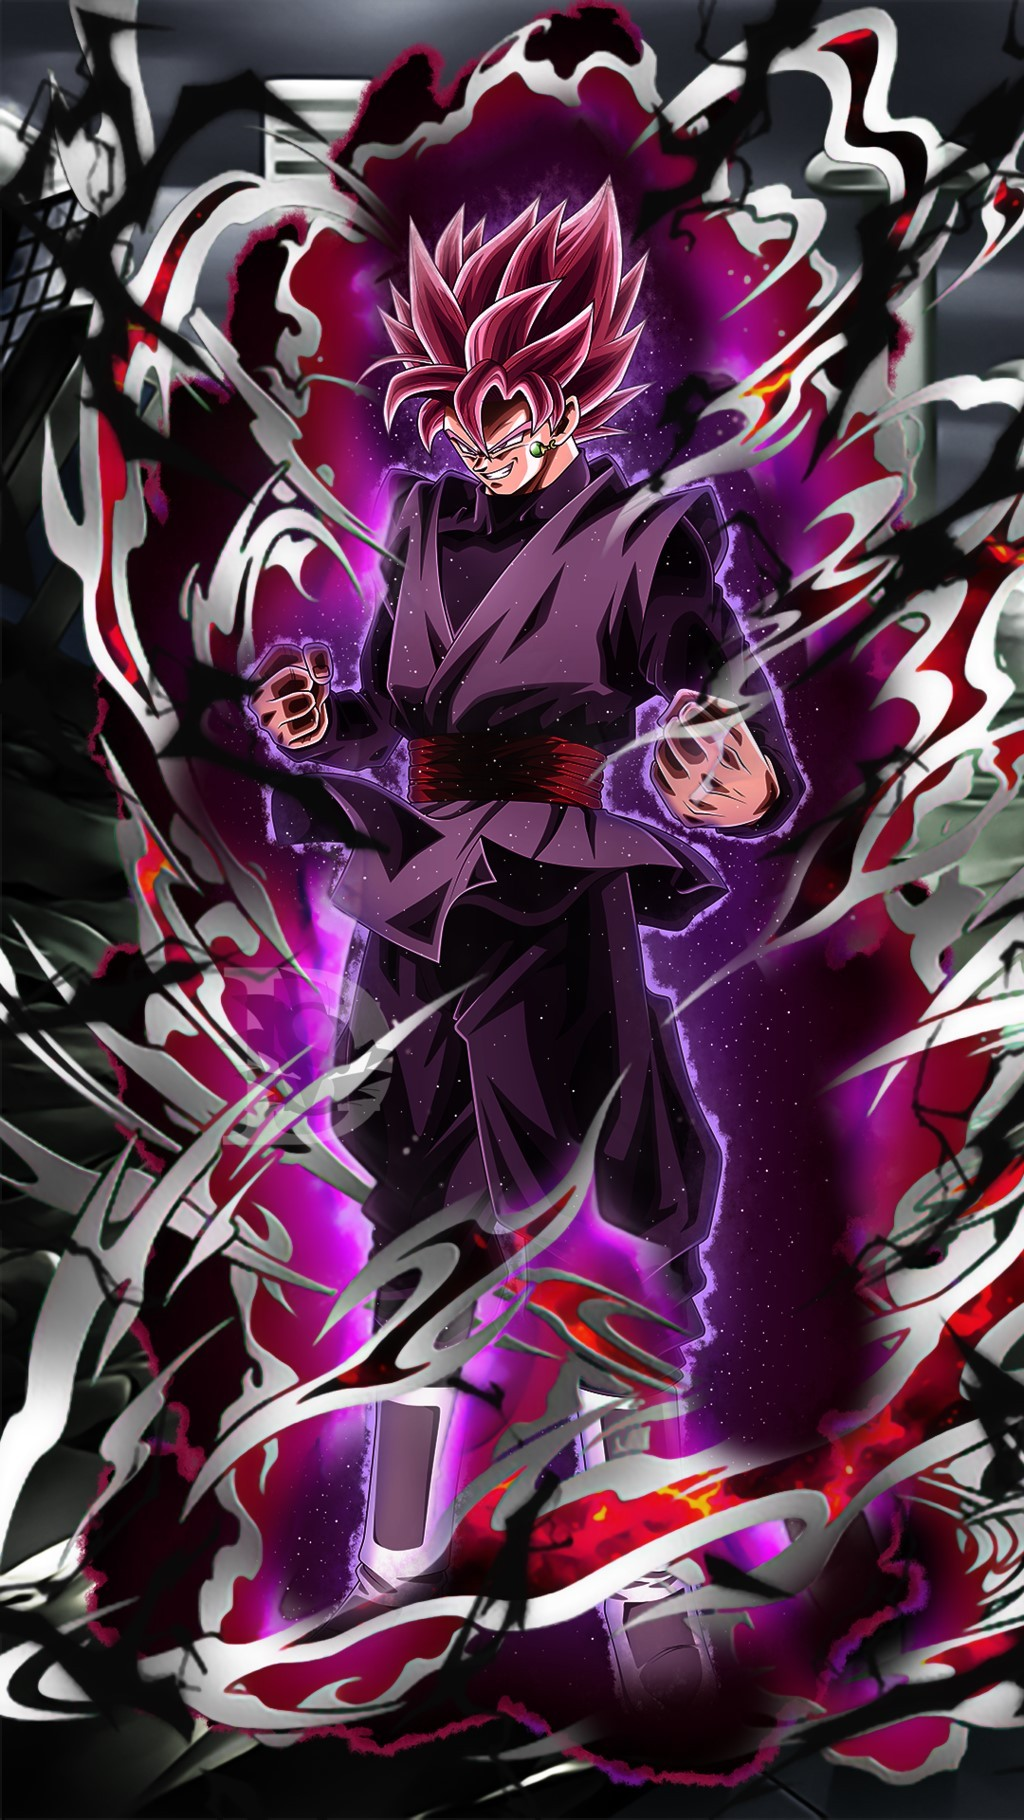 Dragon Ball Z Black Goku Wallpaper Kolpaper Awesome Free Hd Wallpapers